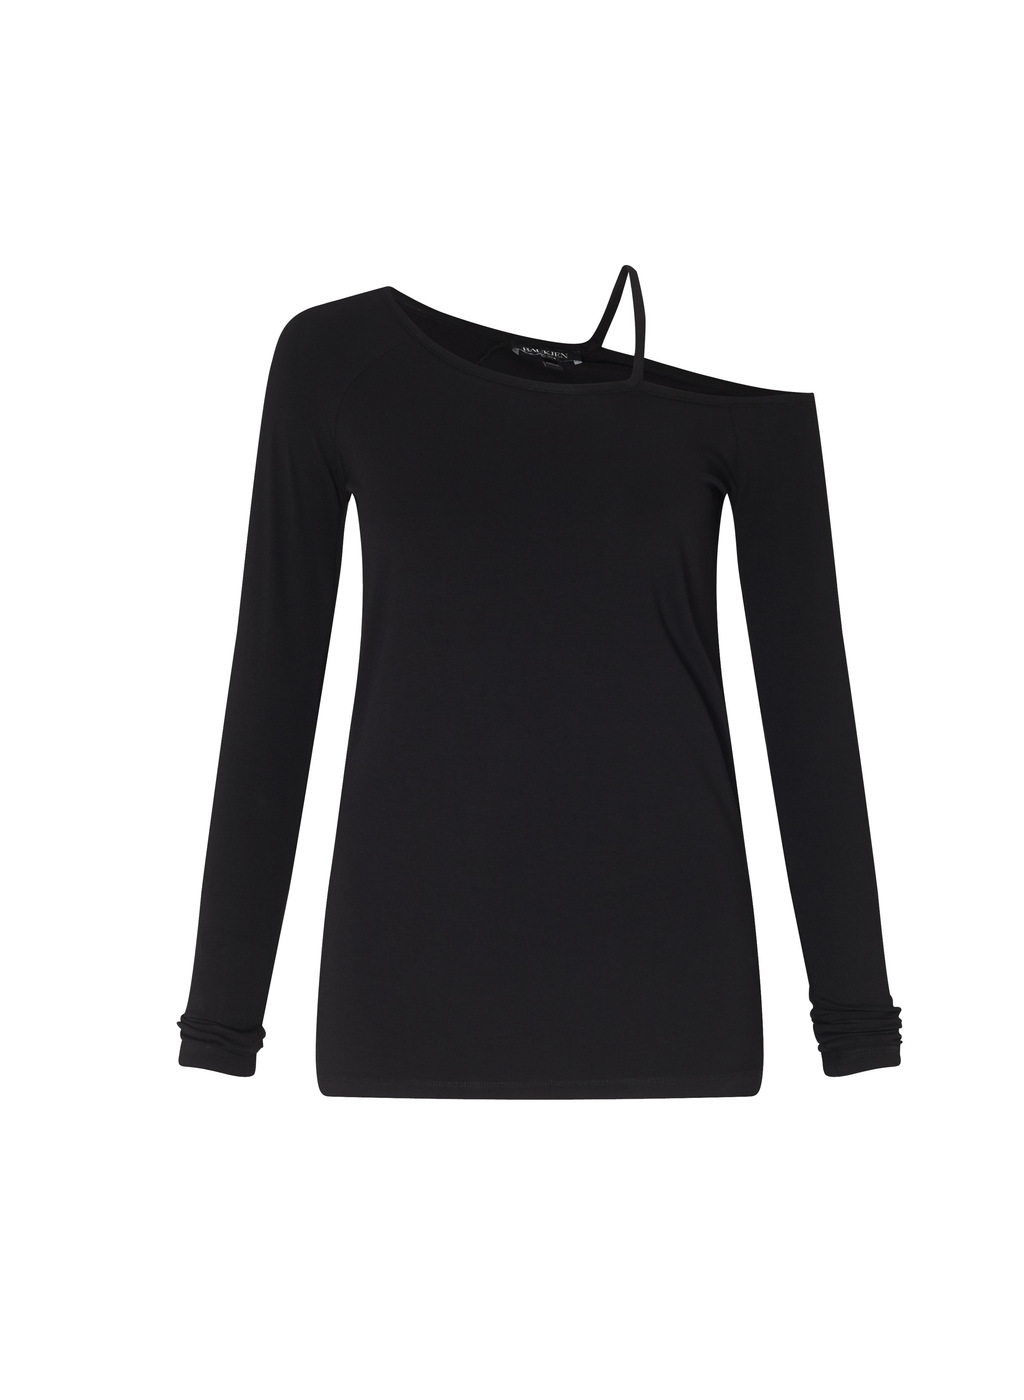 Womenswear Marina Top - pattern: plain; neckline: asymmetric; predominant colour: black; occasions: casual; length: standard; style: top; fibres: viscose/rayon - stretch; fit: body skimming; sleeve length: long sleeve; sleeve style: standard; pattern type: fabric; texture group: jersey - stretchy/drapey; wardrobe: basic; season: a/w 2016